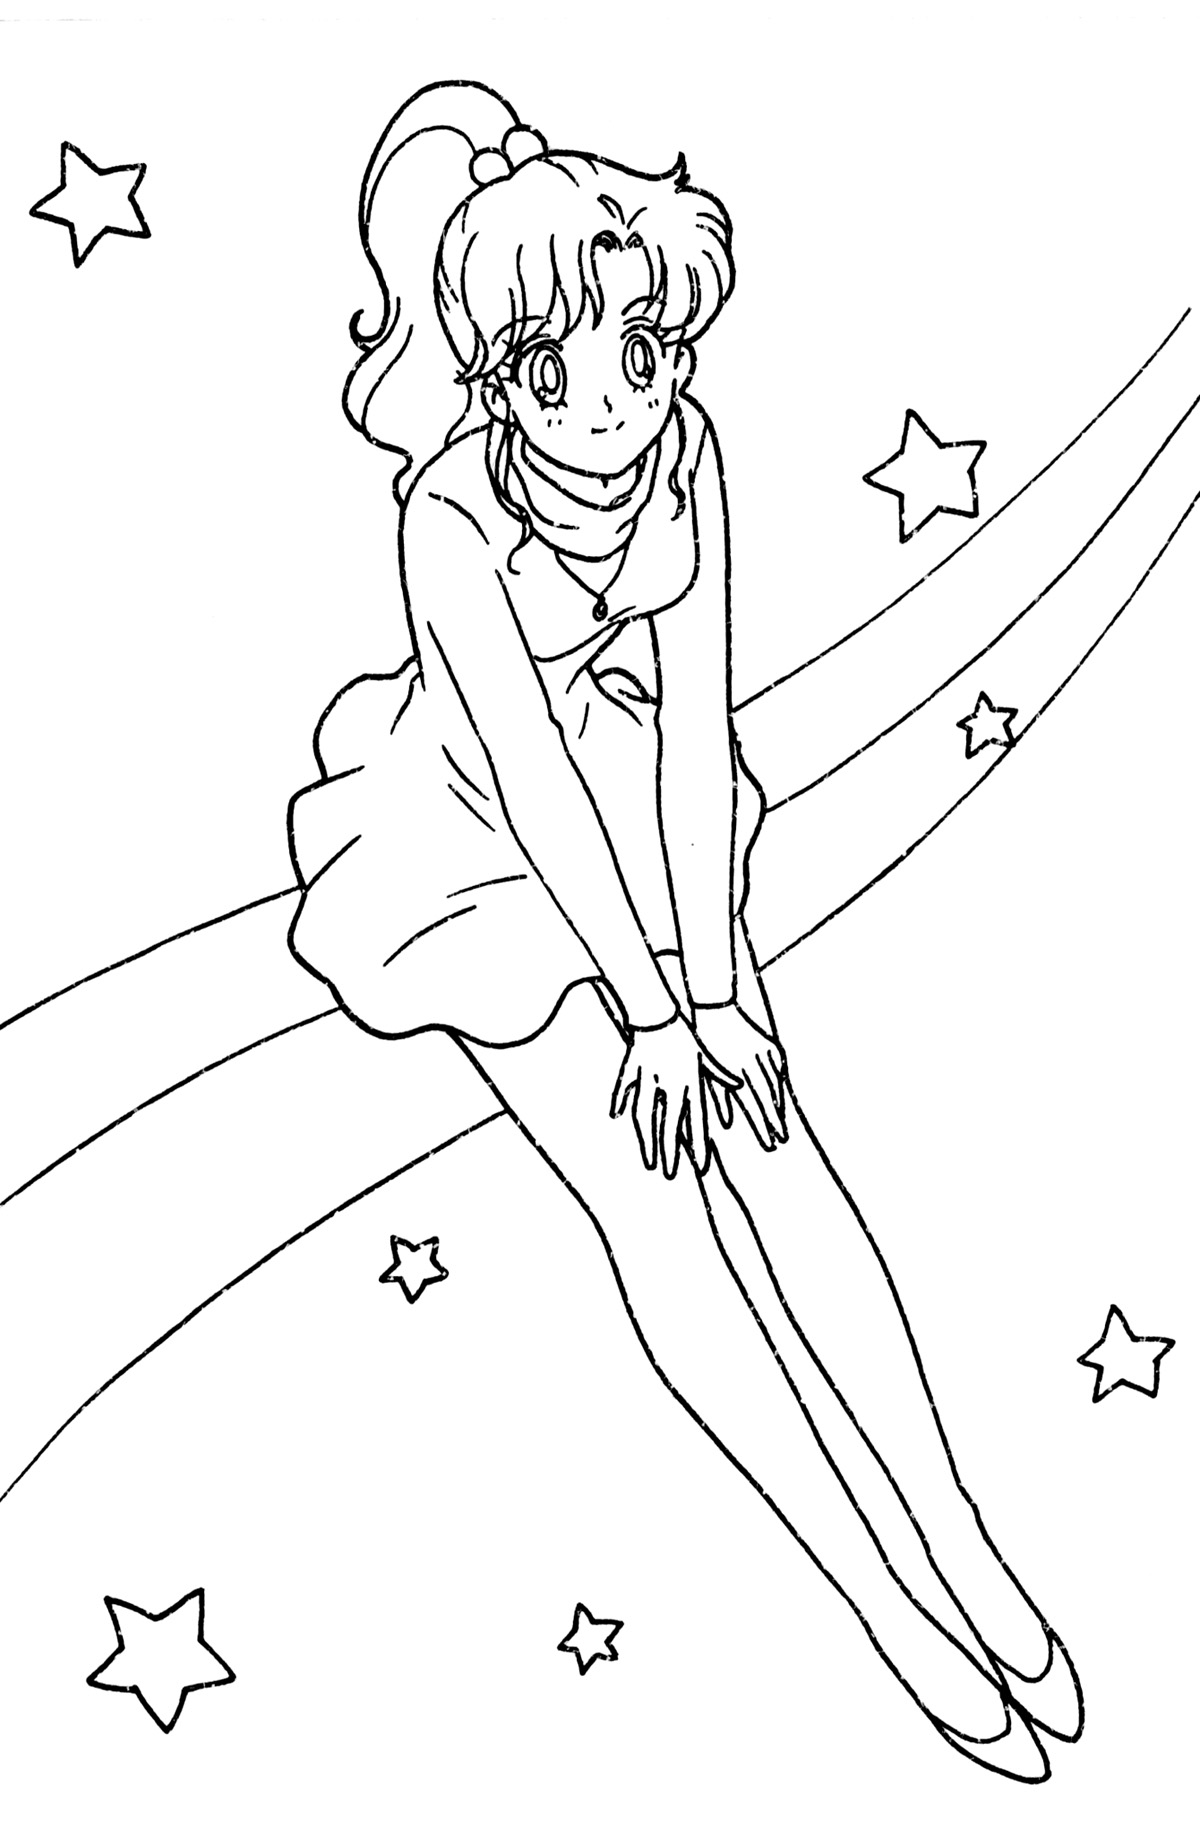 Planet Jupiter Coloring Pages